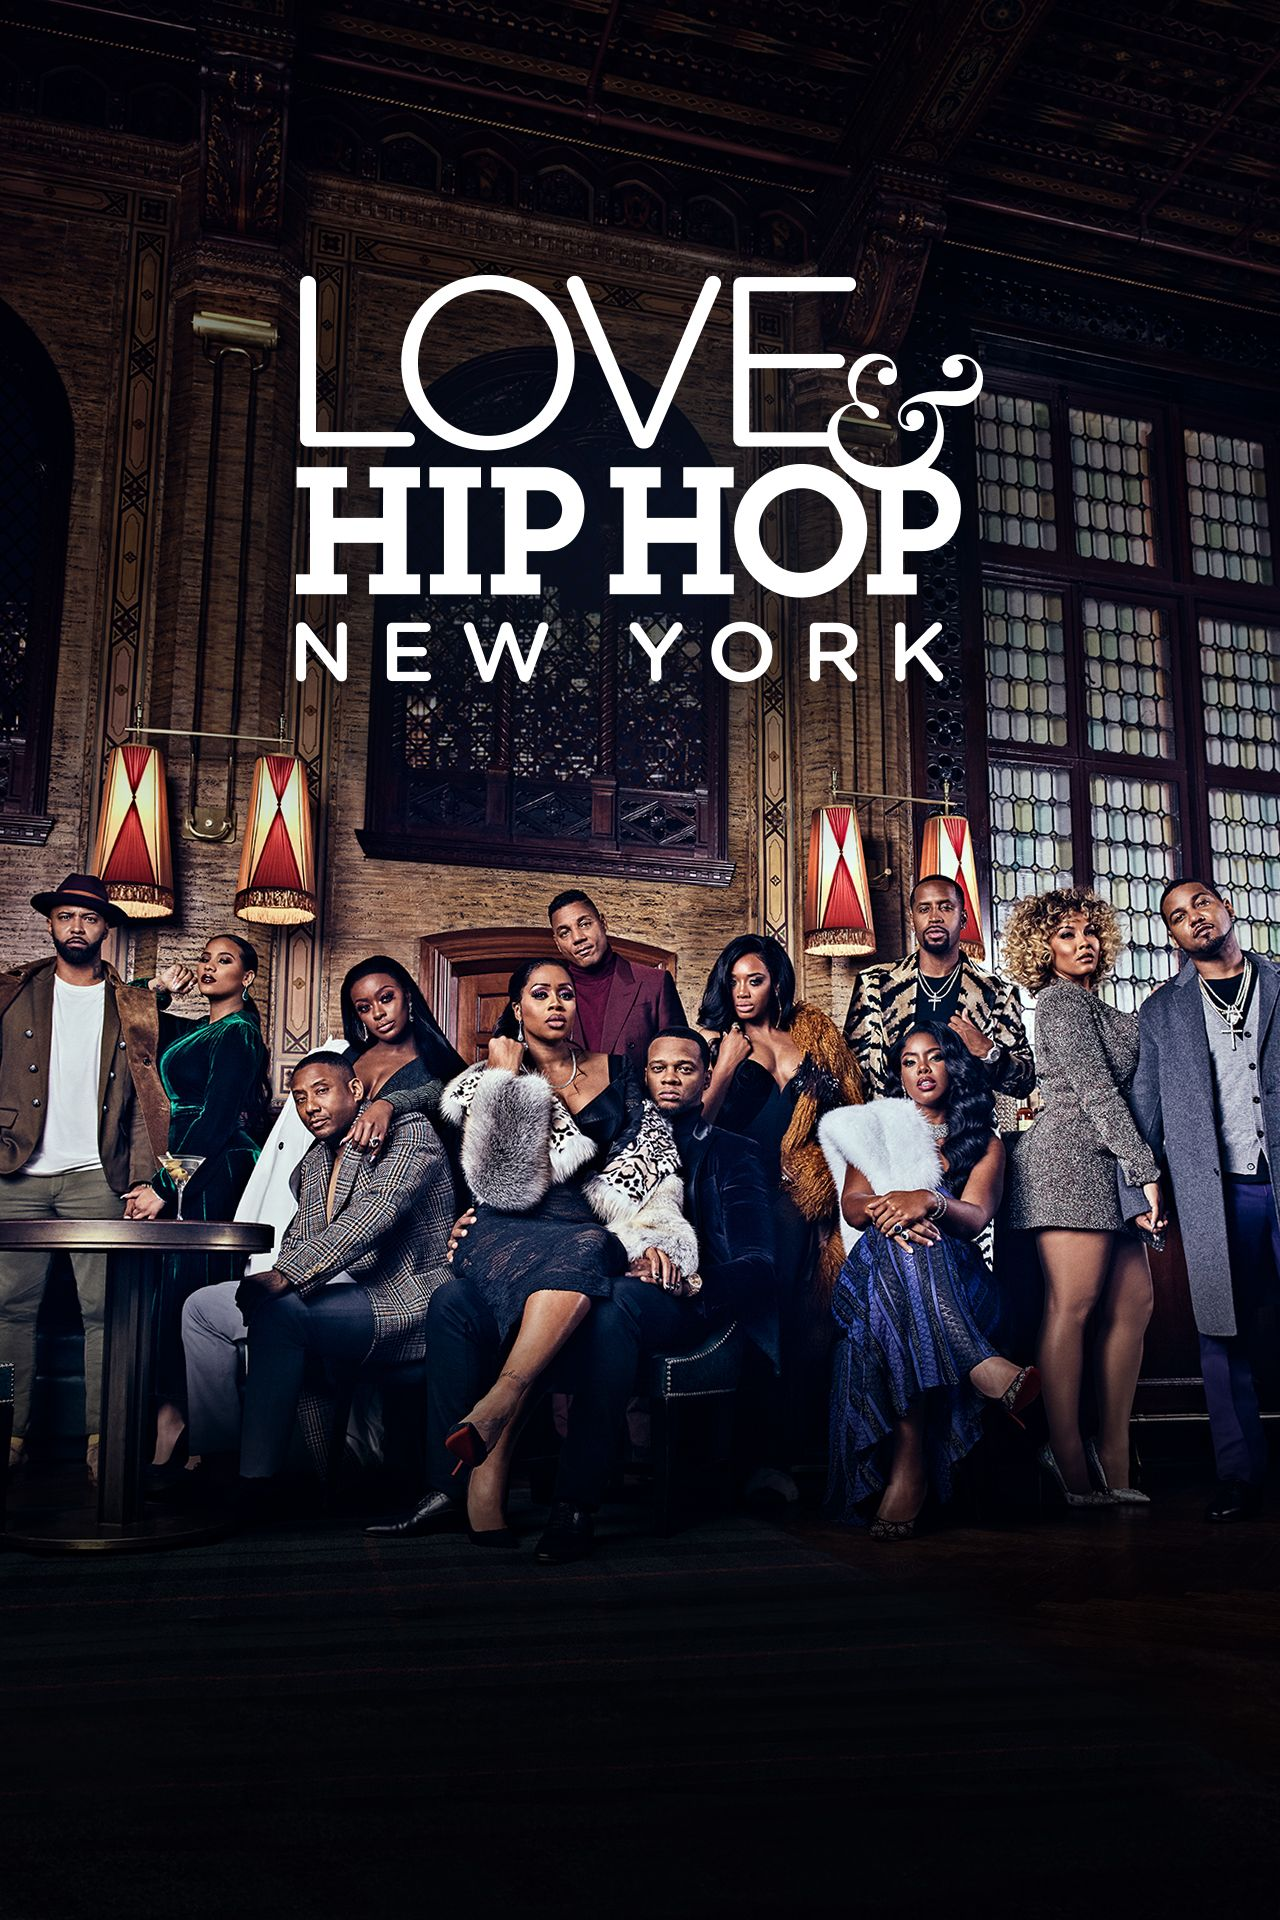 Love And Hip Hop New York Cast 2020 Love & Hip Hop New York TV Series Cast Members | VH1